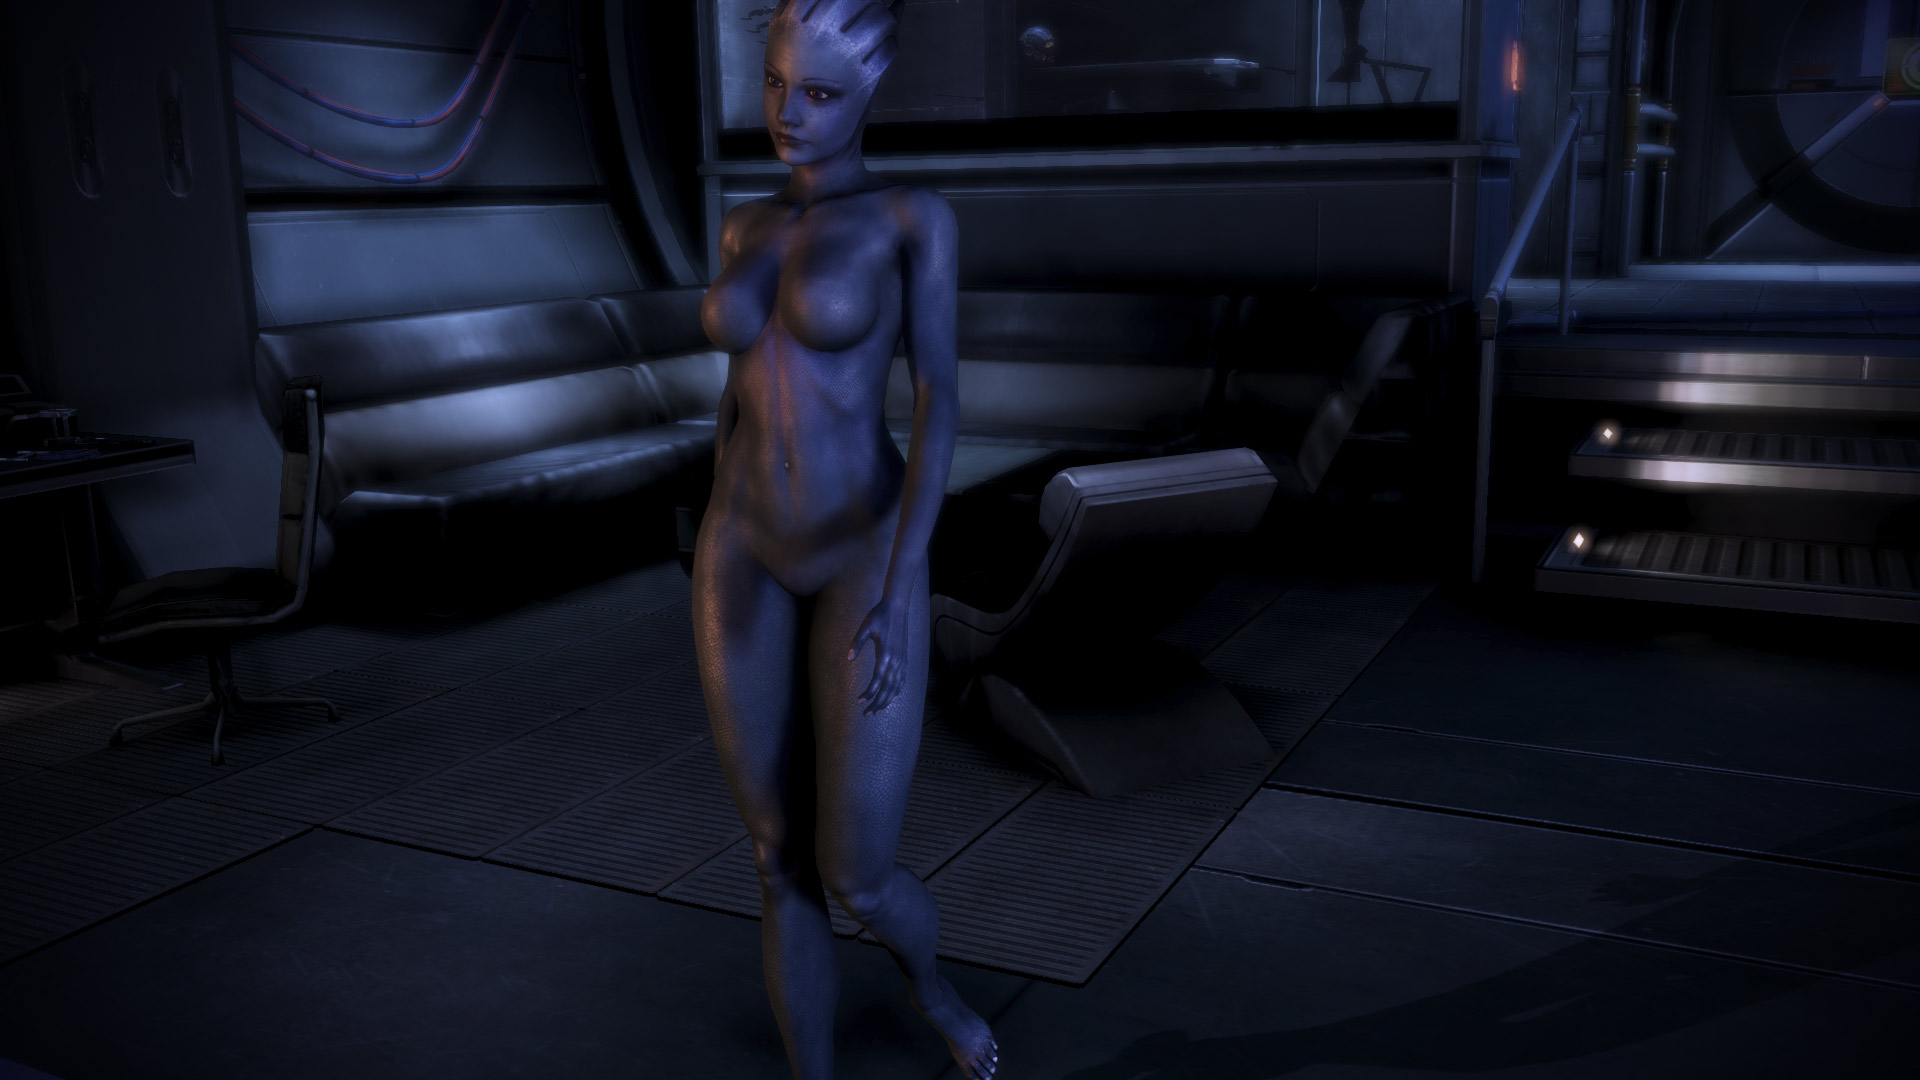 Mass effect 3 nude pics hentai video